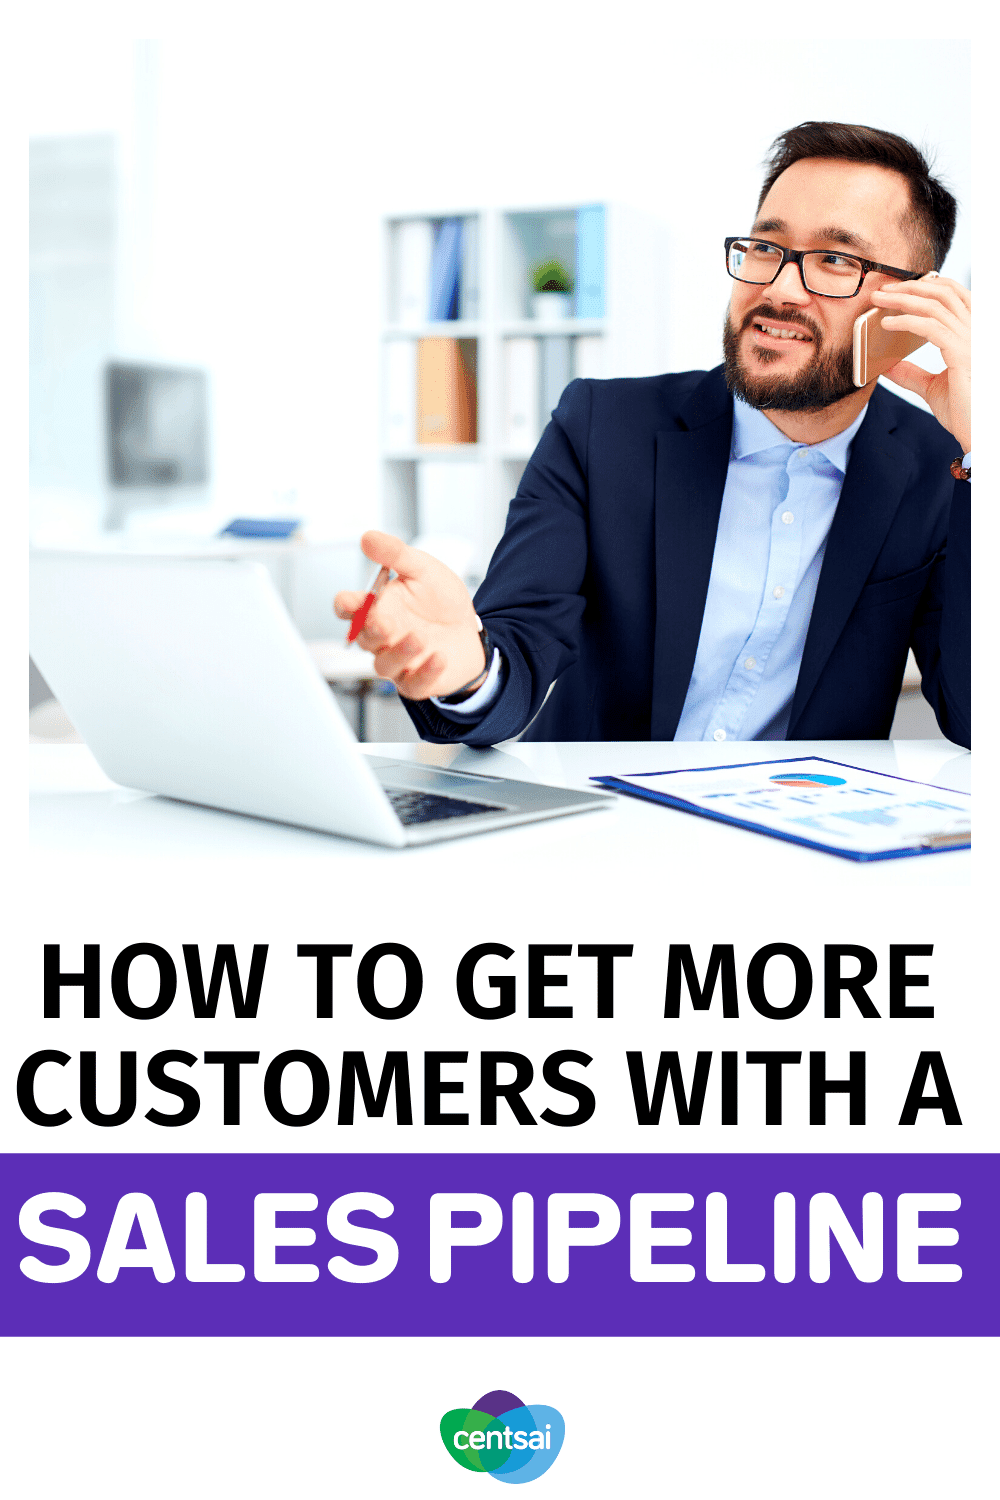 How to Get More Customers With a Sales Pipeline